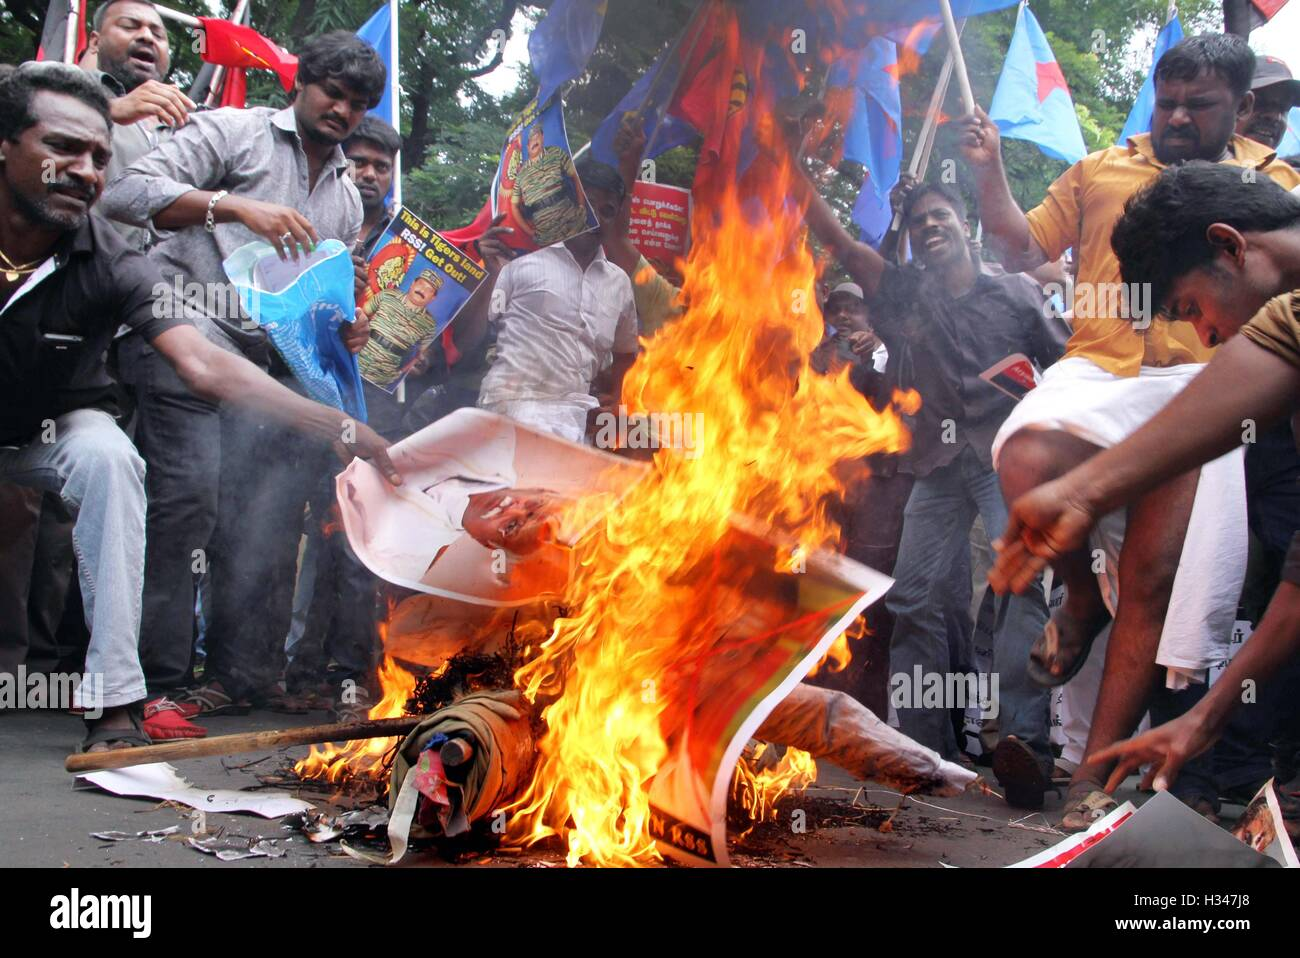 Supporters of several Tamil nationalist parties burn effigies stage protest against the Kaveri water sharing issue - Stock Image